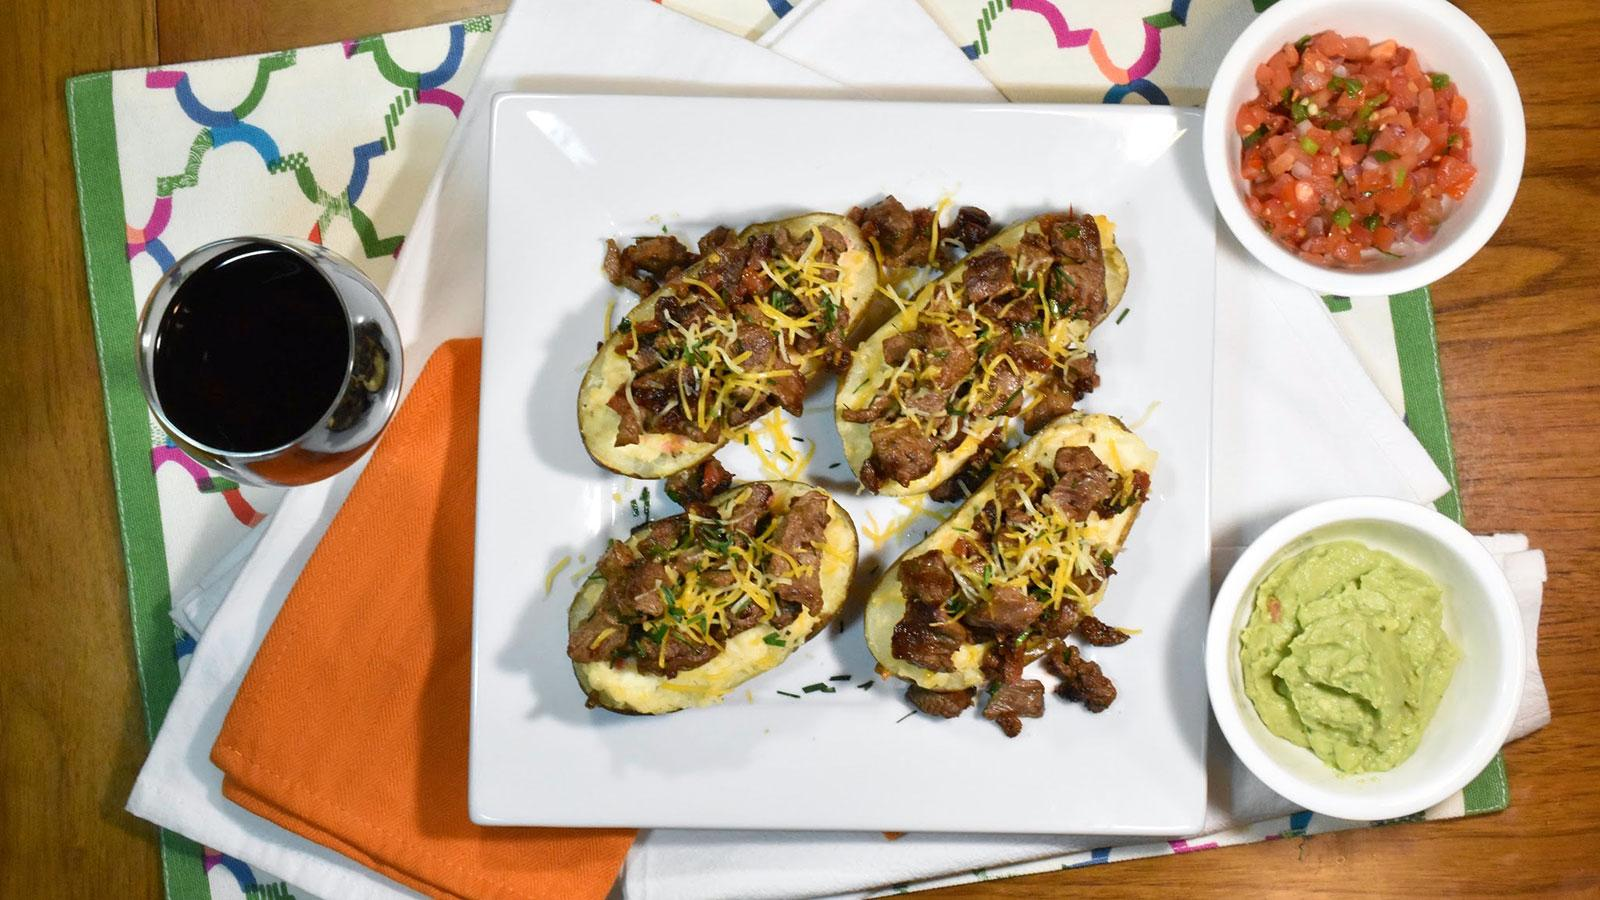 8 & $20: Steak-Loaded Cheesy Baked Potatoes